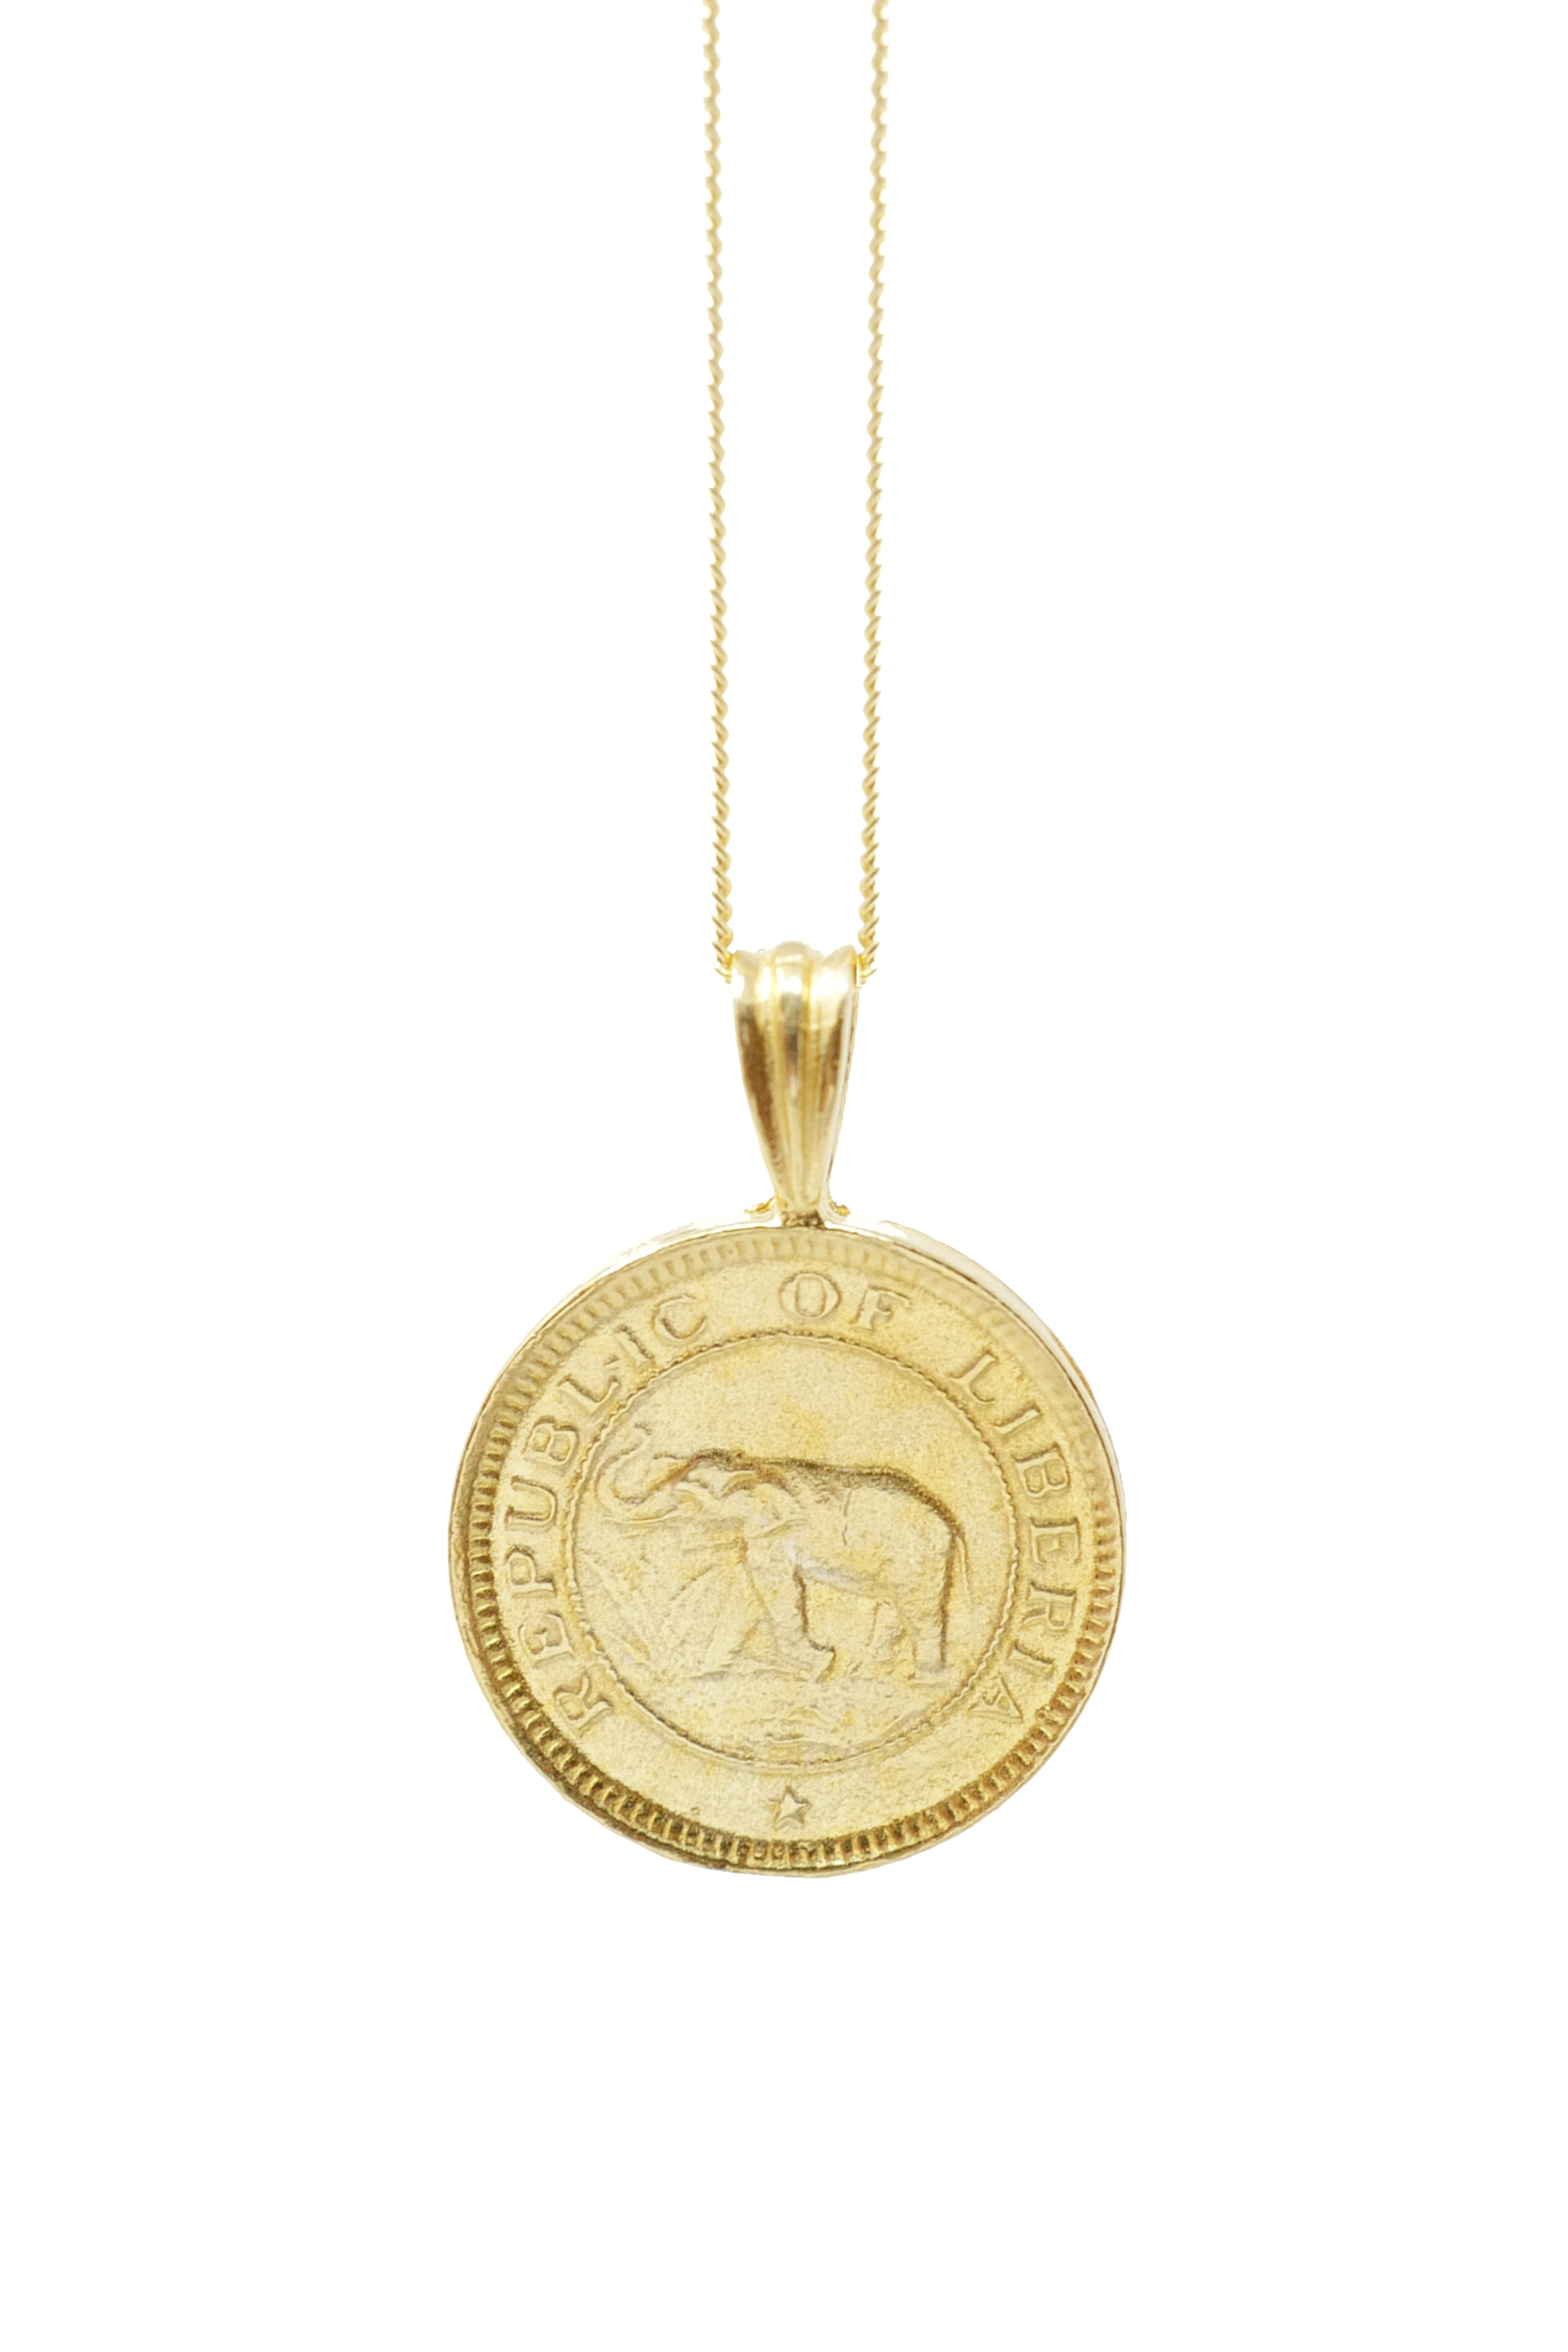 THE LIBERIA Coin Necklace